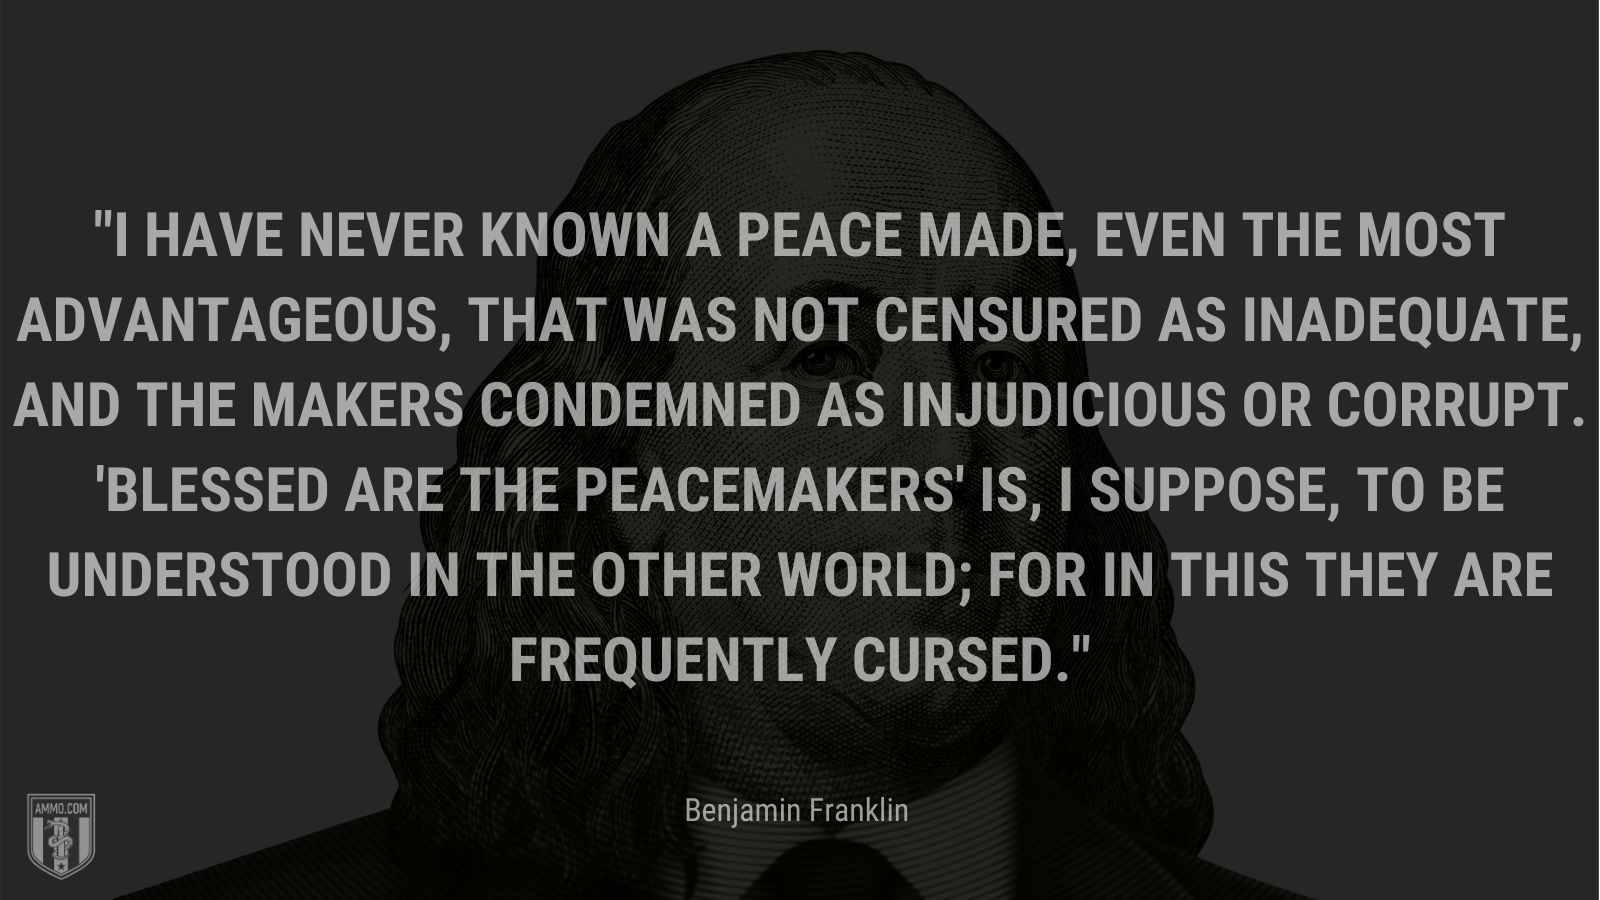 """""""I have never known a peace made, even the most advantageous, that was not censured as inadequate, and the makers condemned as injudicious or corrupt. 'Blessed are the peacemakers' is, I suppose, to be understood in the other world; for in this they are frequently cursed."""" - Benjamin Franklin"""